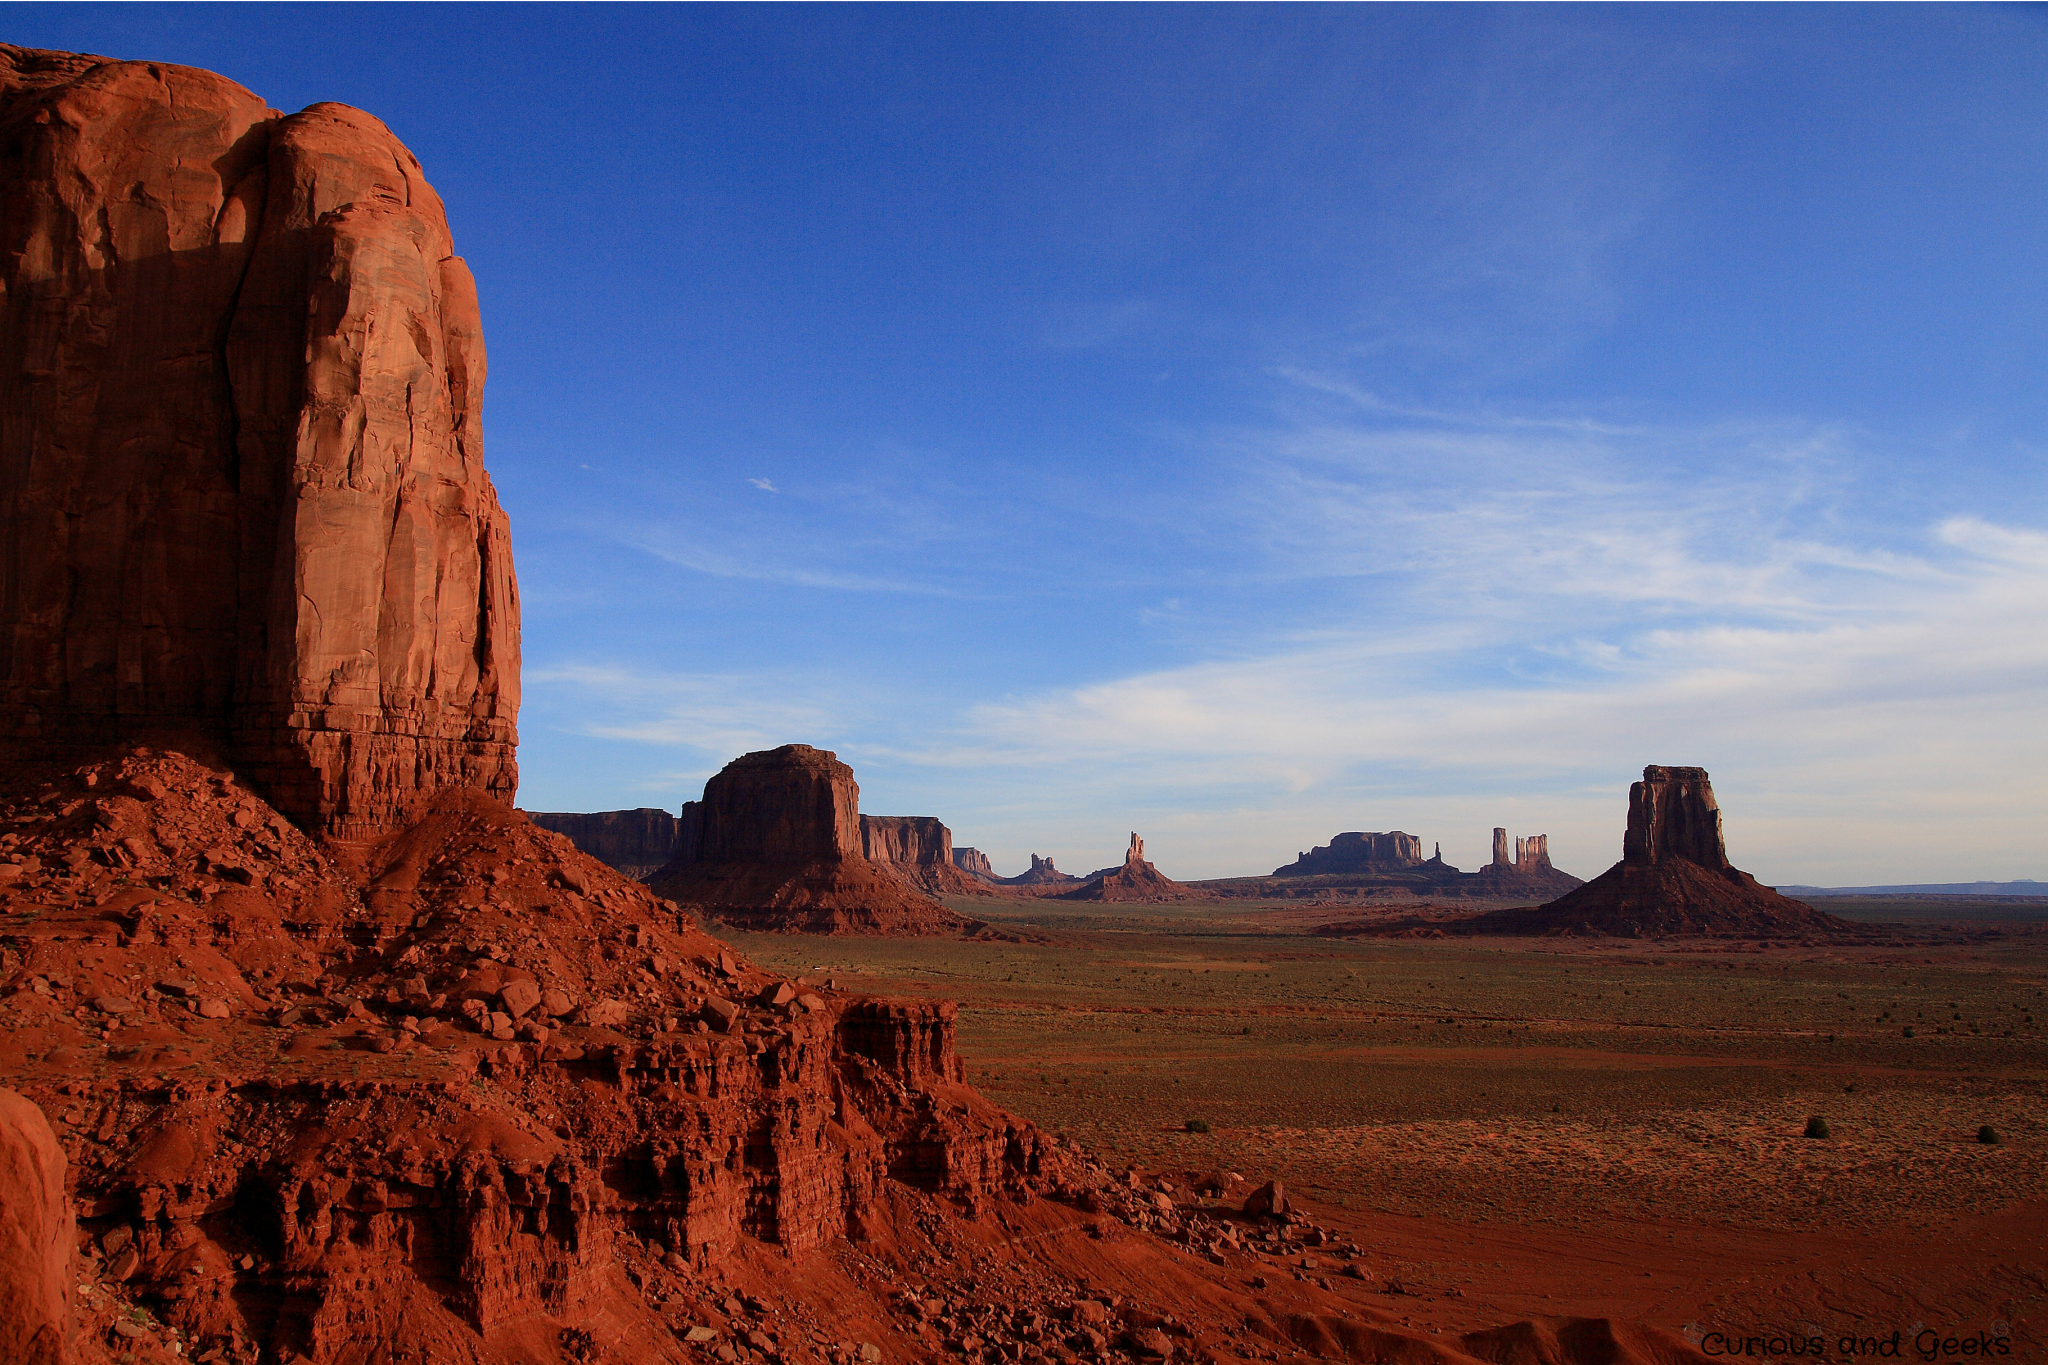 West Coast USA Road Trip Monument Valley - Our three-week West Coast USA Road Trip